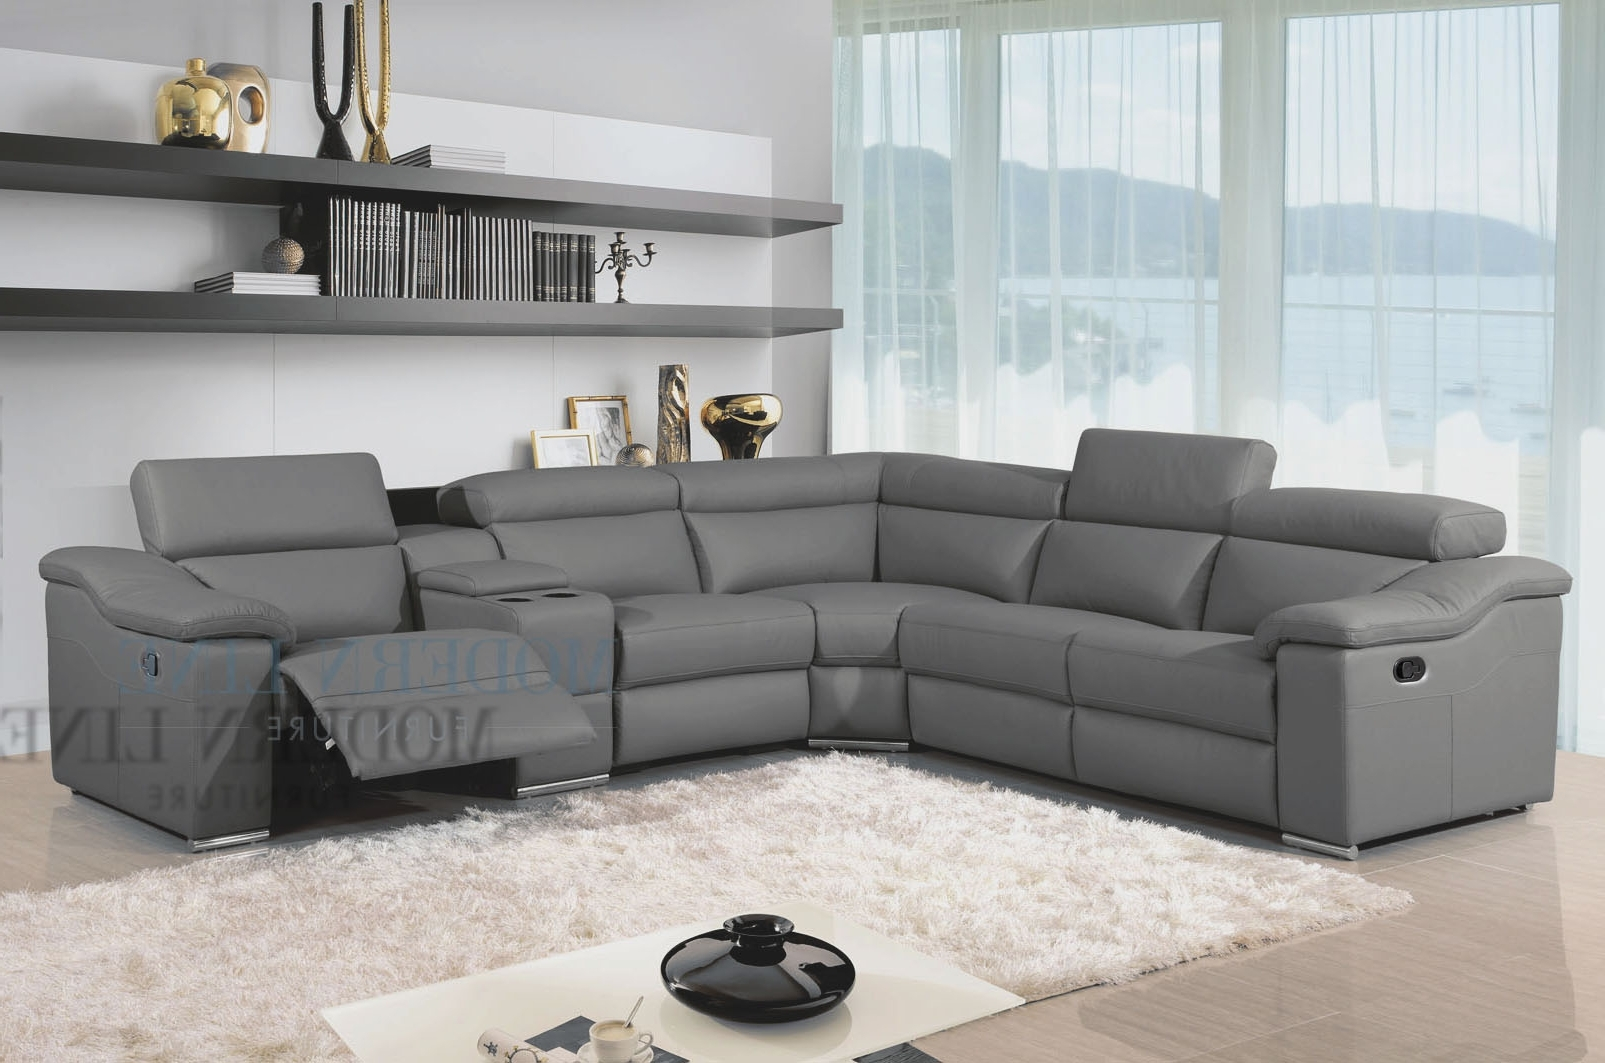 Well Liked Vancouver Bc Sectional Sofas Intended For Modern Reclining Sectional Sofas – Cleanupflorida (View 5 of 15)